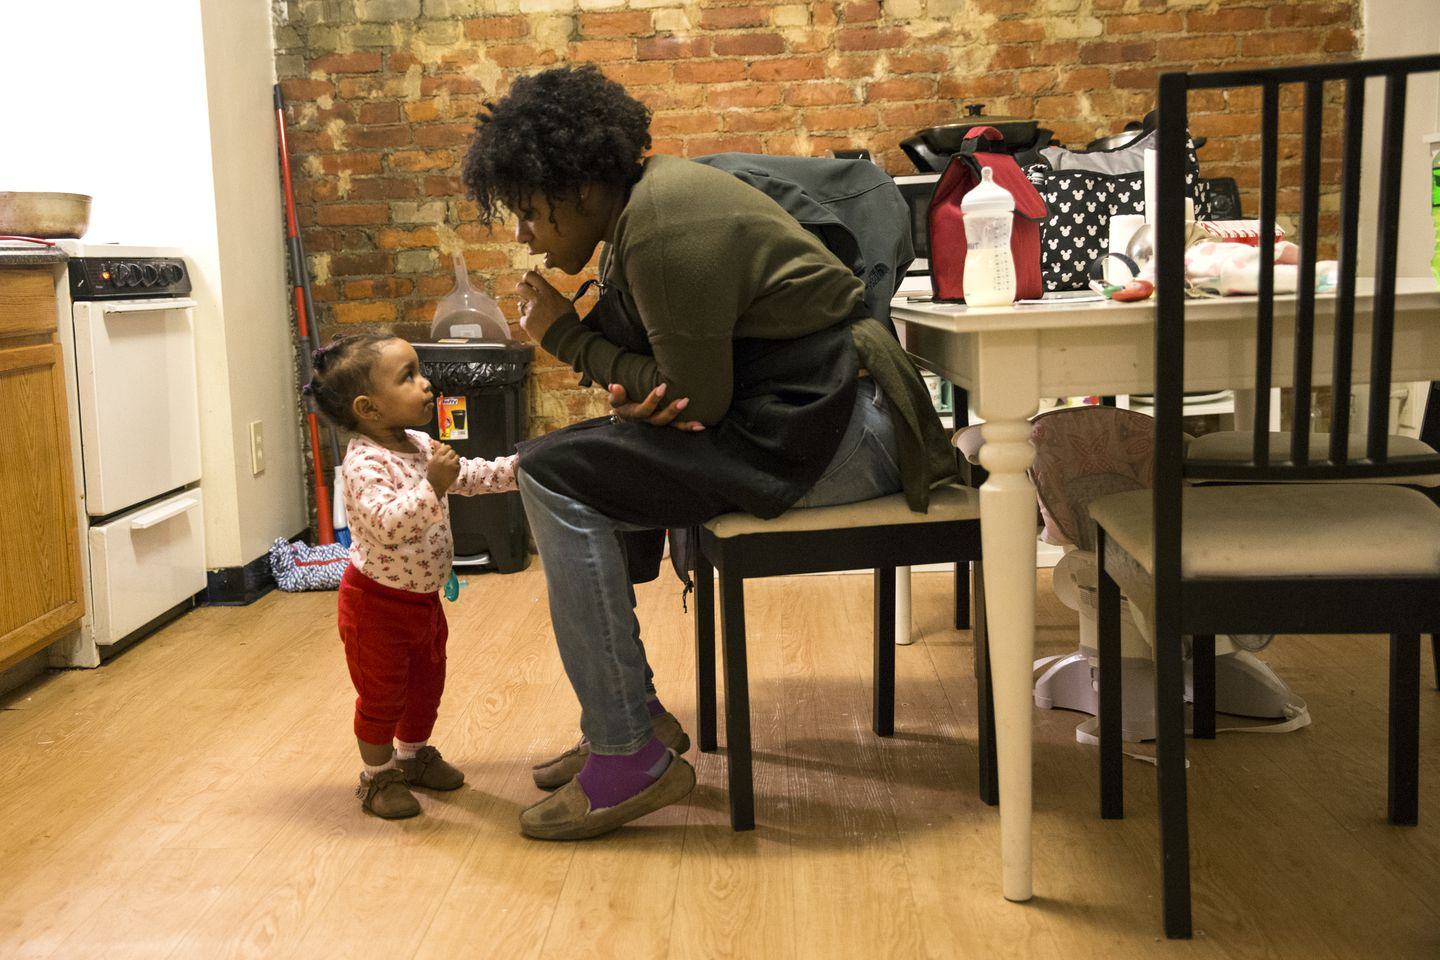 Shynnah Monge-Cueto played with her 1-year-old daughter Lyannah Cueto at their home in Boston.